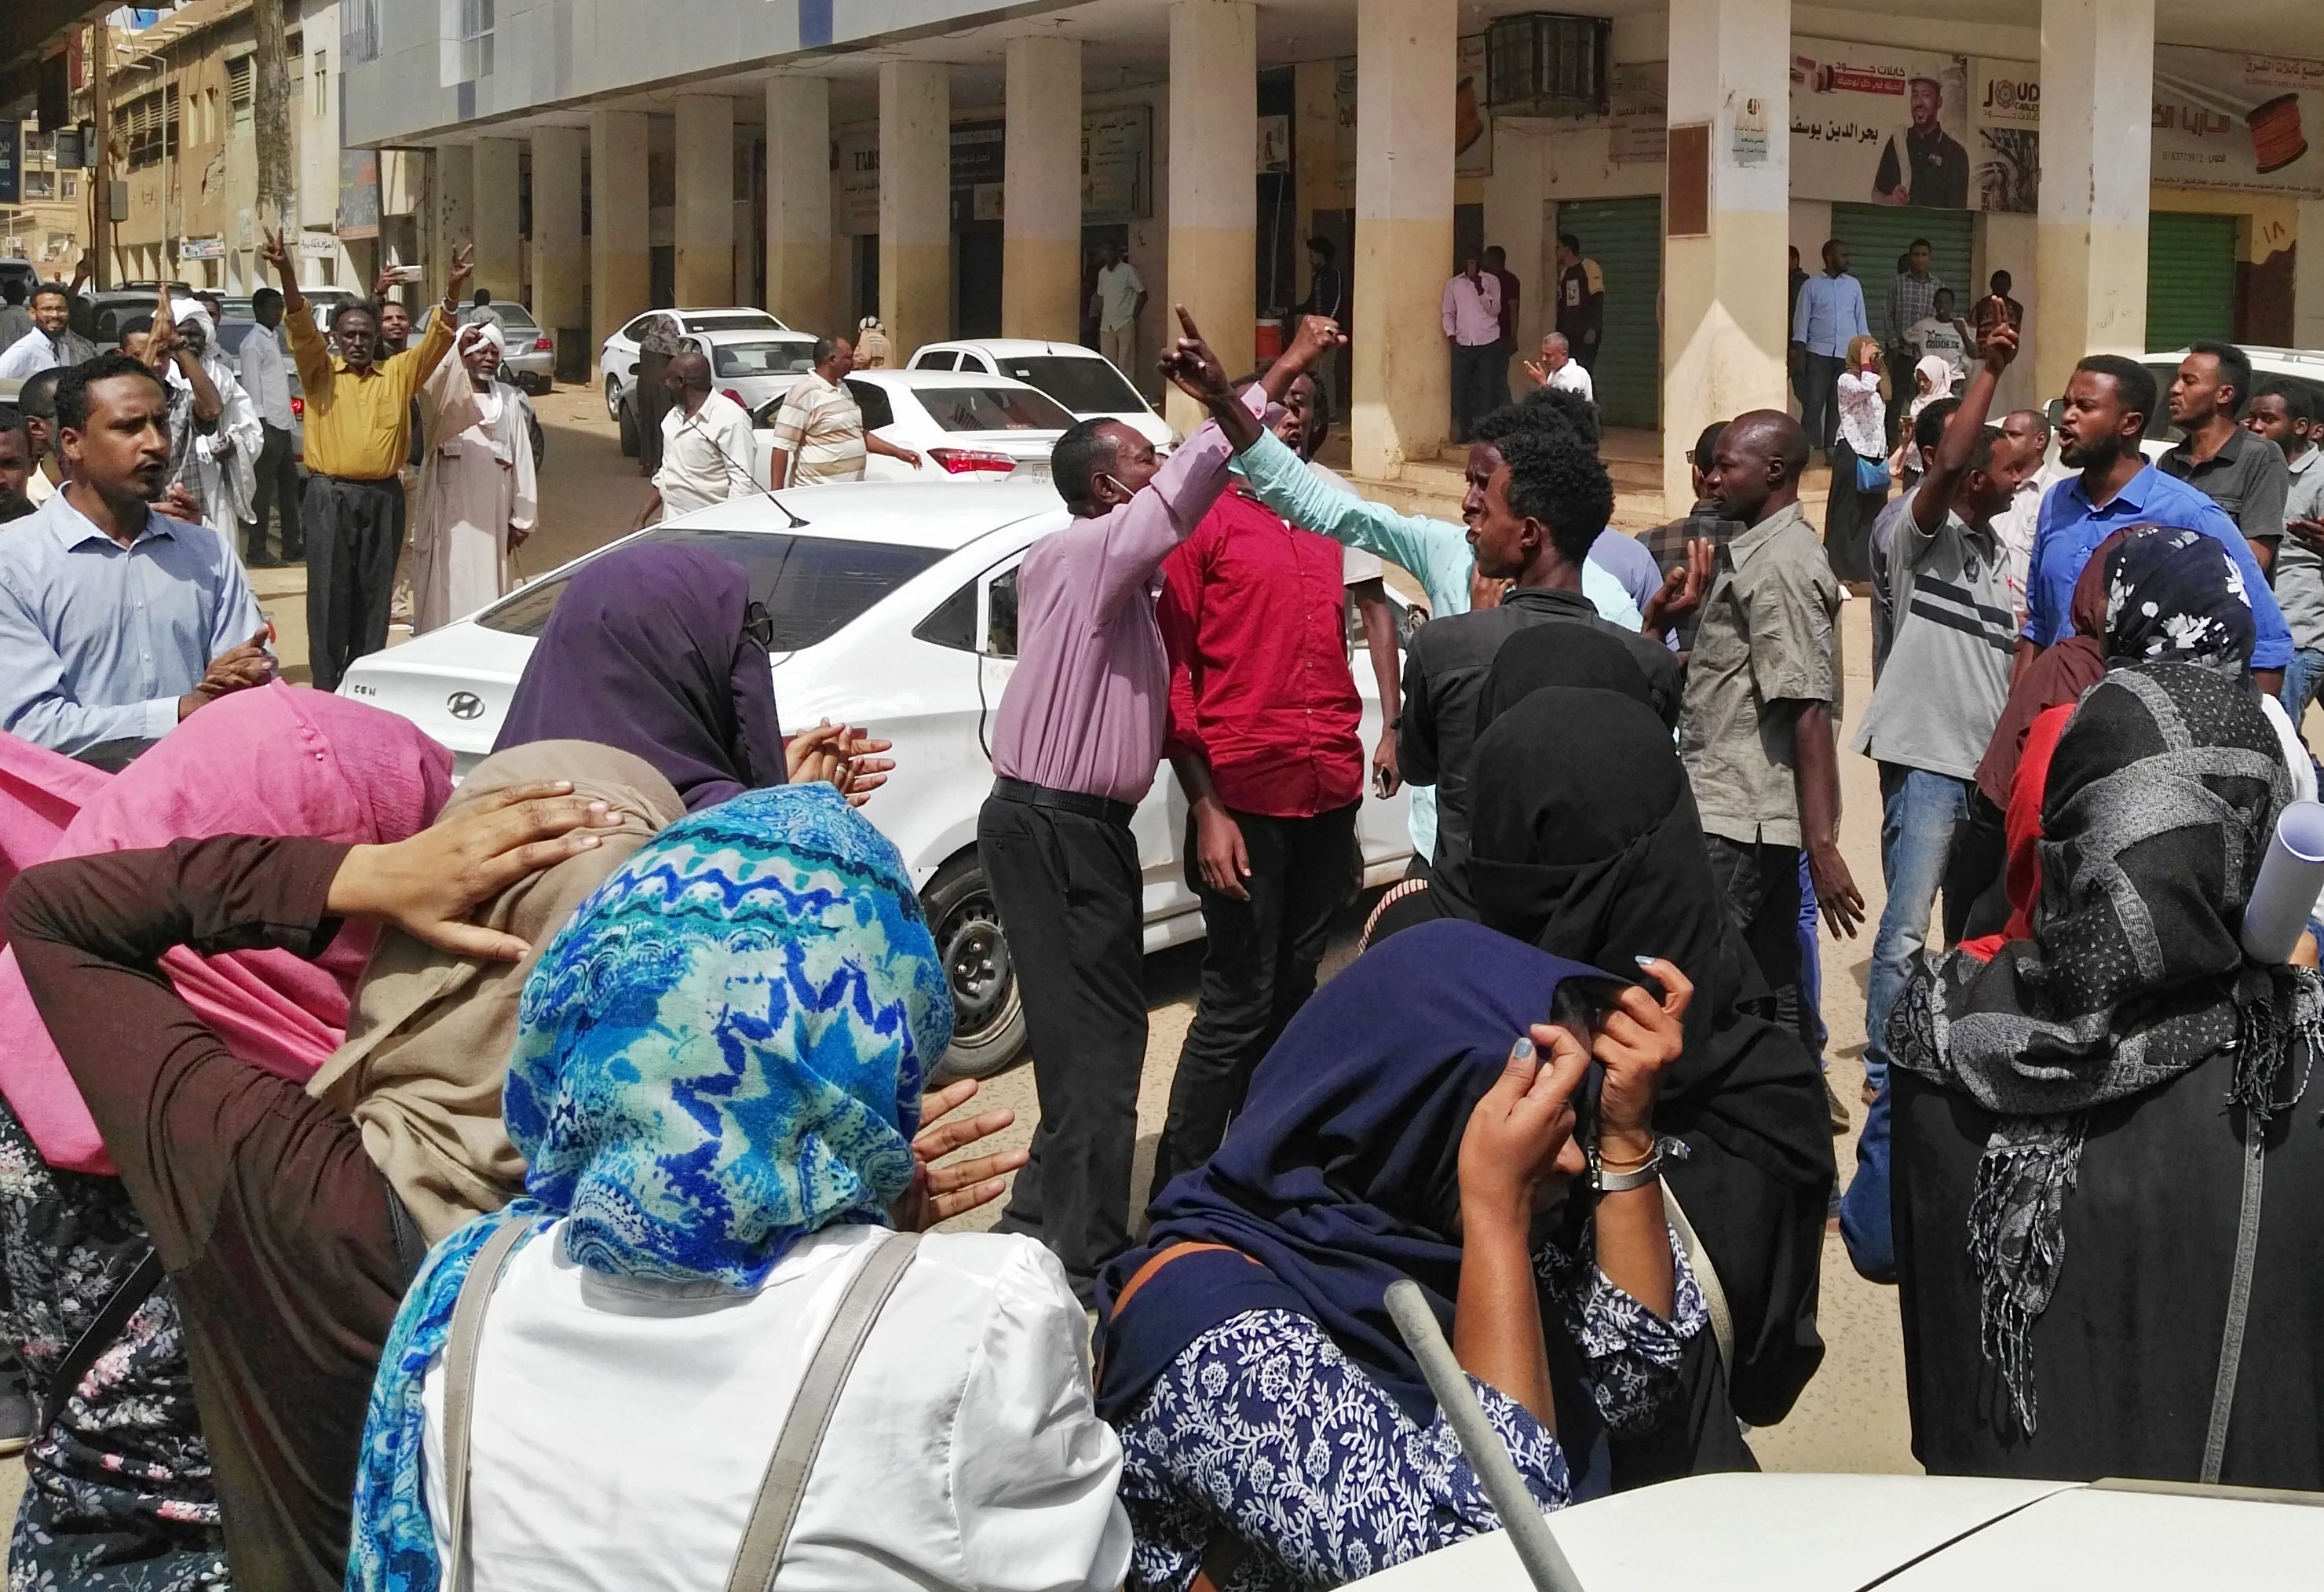 Sudanese protesters take part in an anti-government demonstration in Khartoum, Feb. 14, 2019.